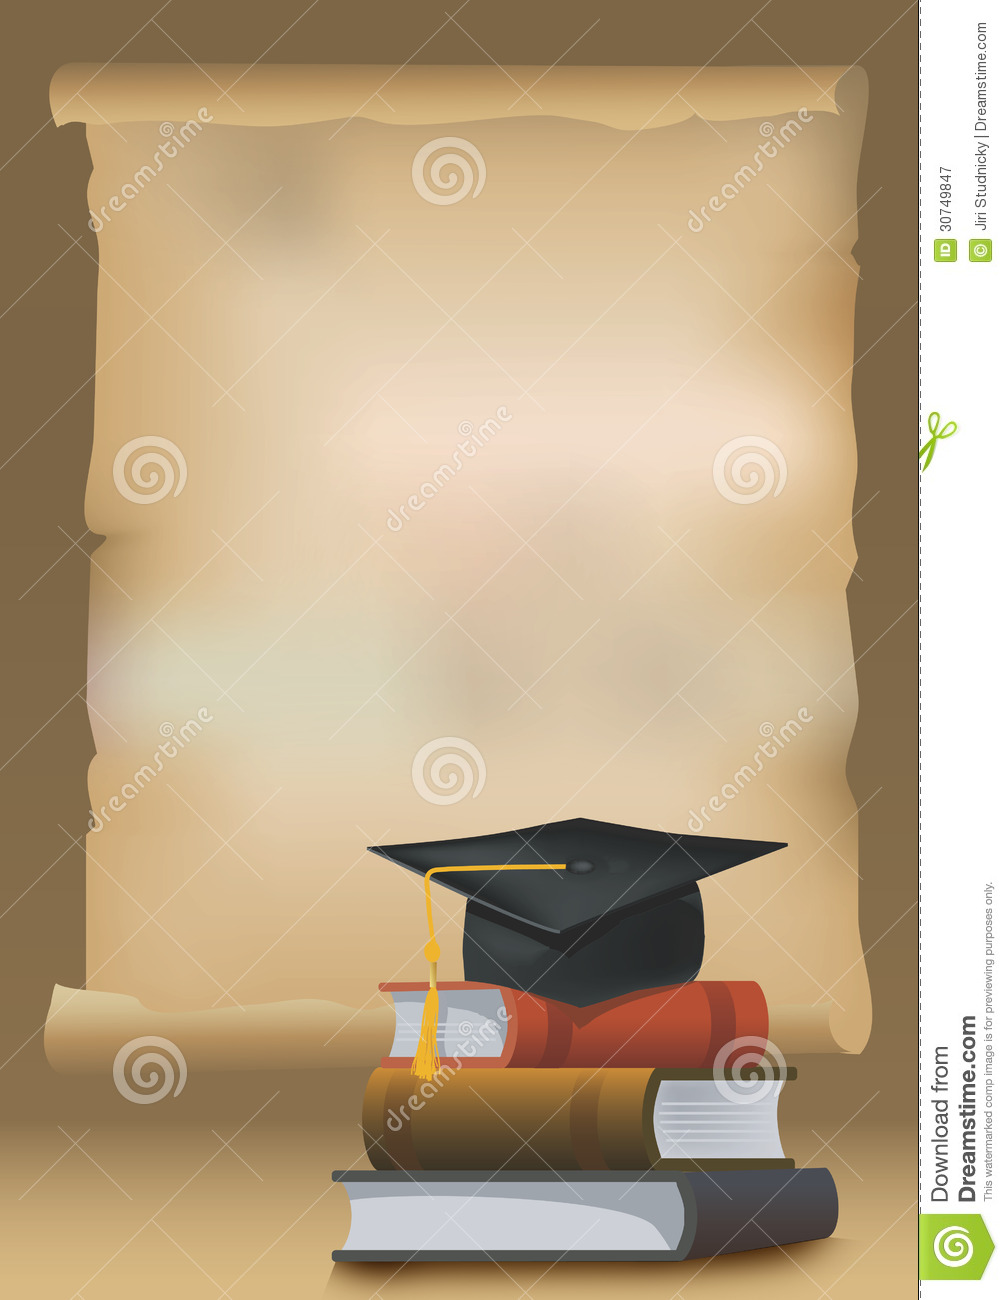 Graduation Background Royalty Free Stock Photography - Image: 30749847